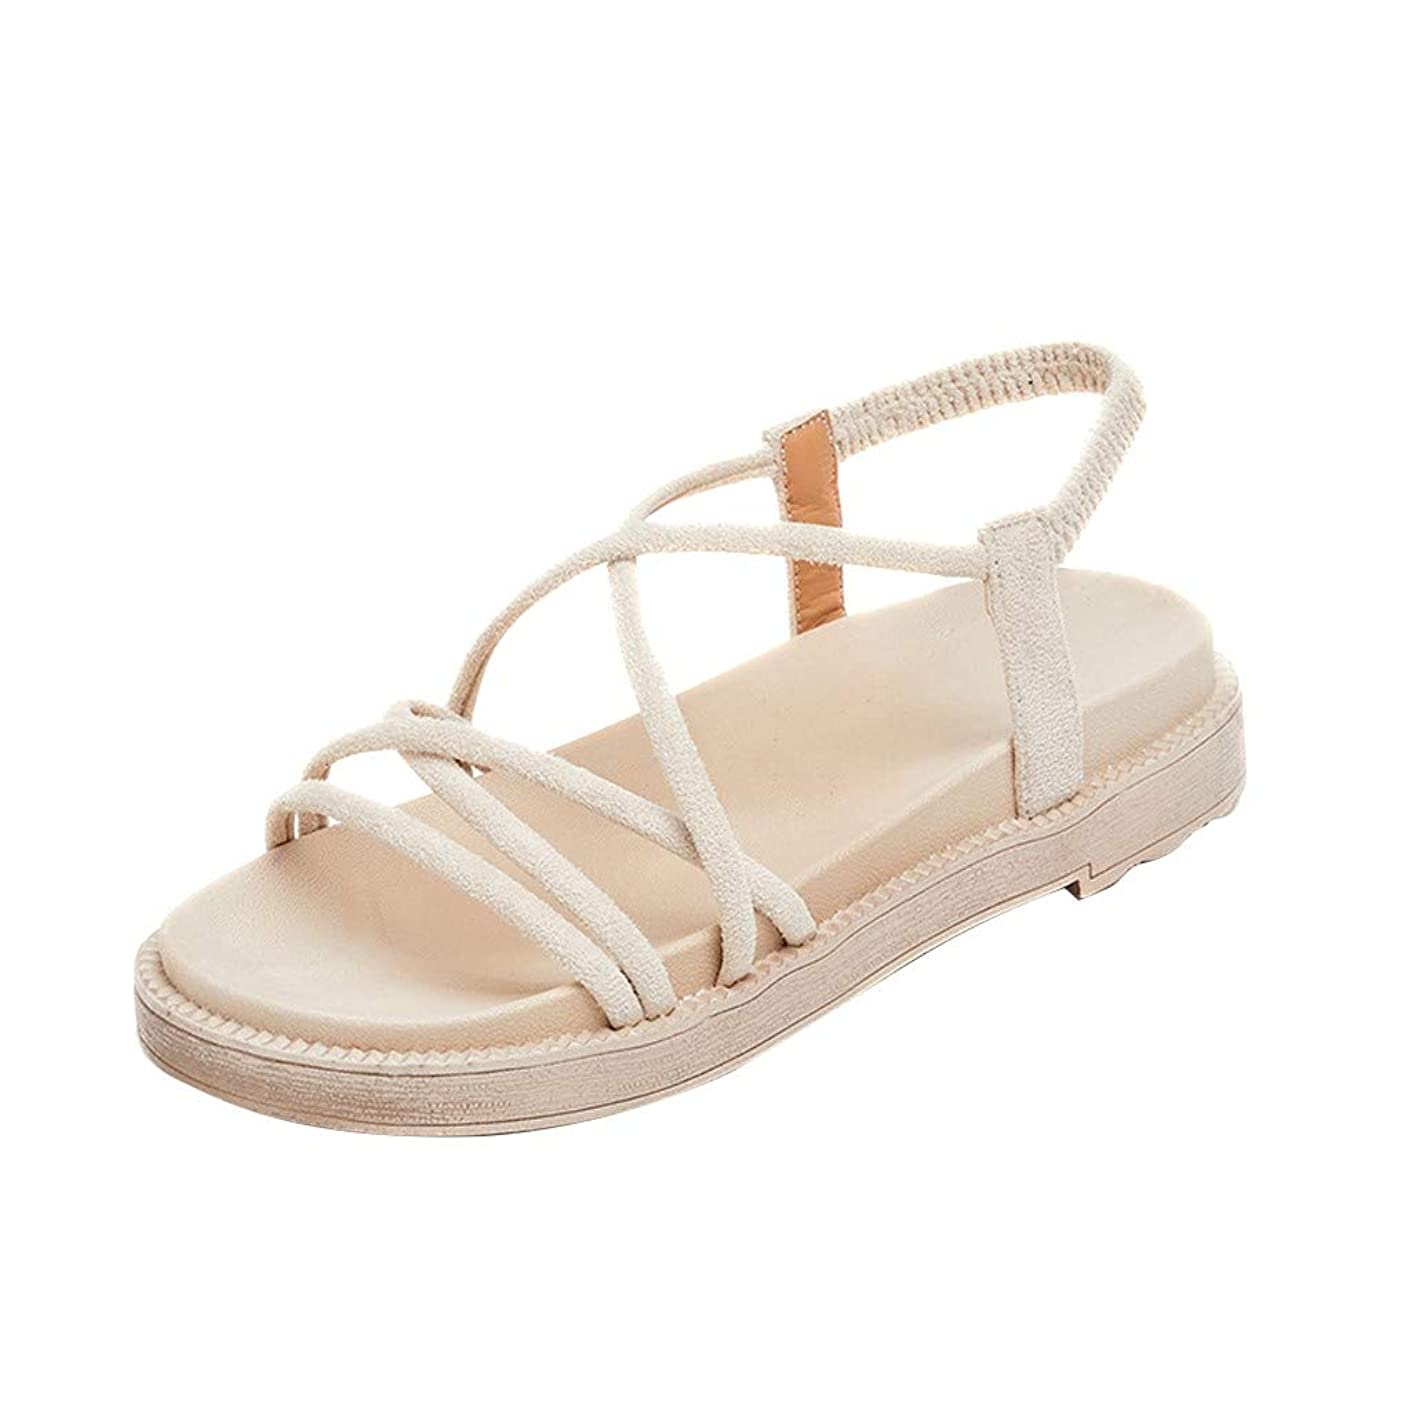 Women's Summer Casual Retro Roman Shoes,Ladies Hemp Rope Strap Comfort Beach Sandals, Soft Outdoor Walking Slippers Shoes